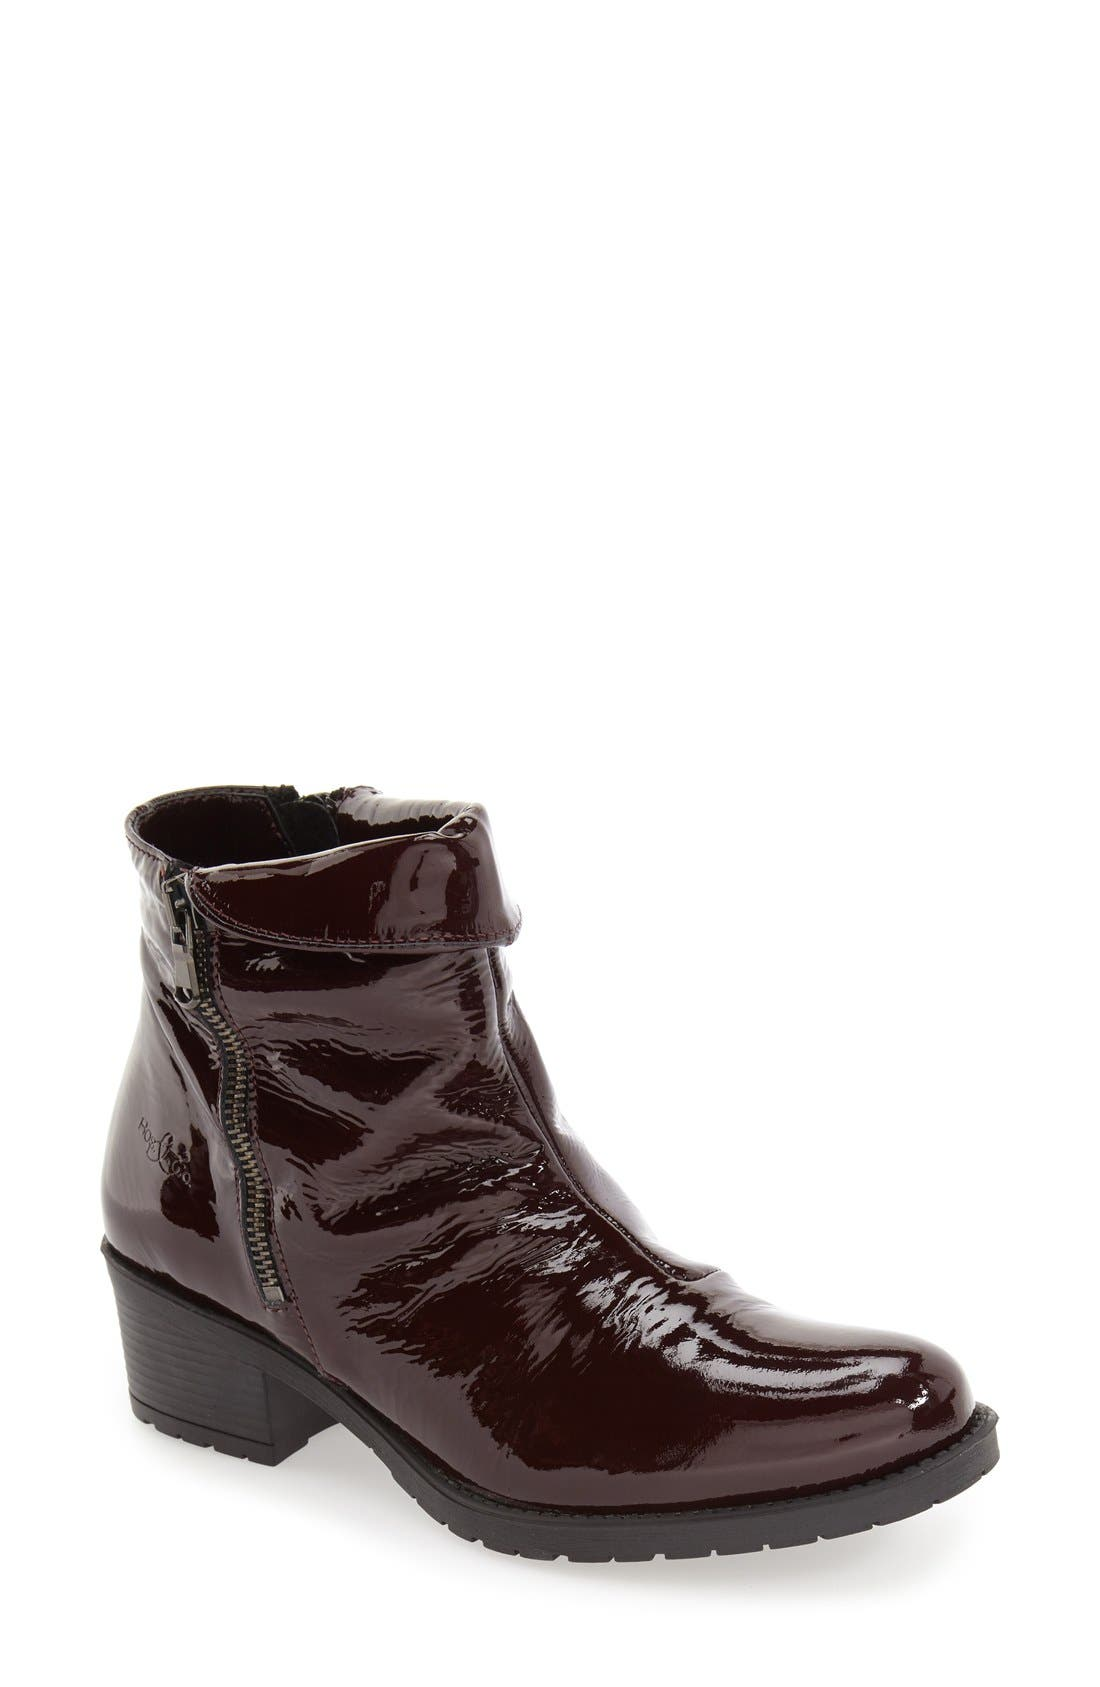 Alternate Image 1 Selected - Bos. & Co. 'Borano' Slouchy Waterproof Bootie (Women)